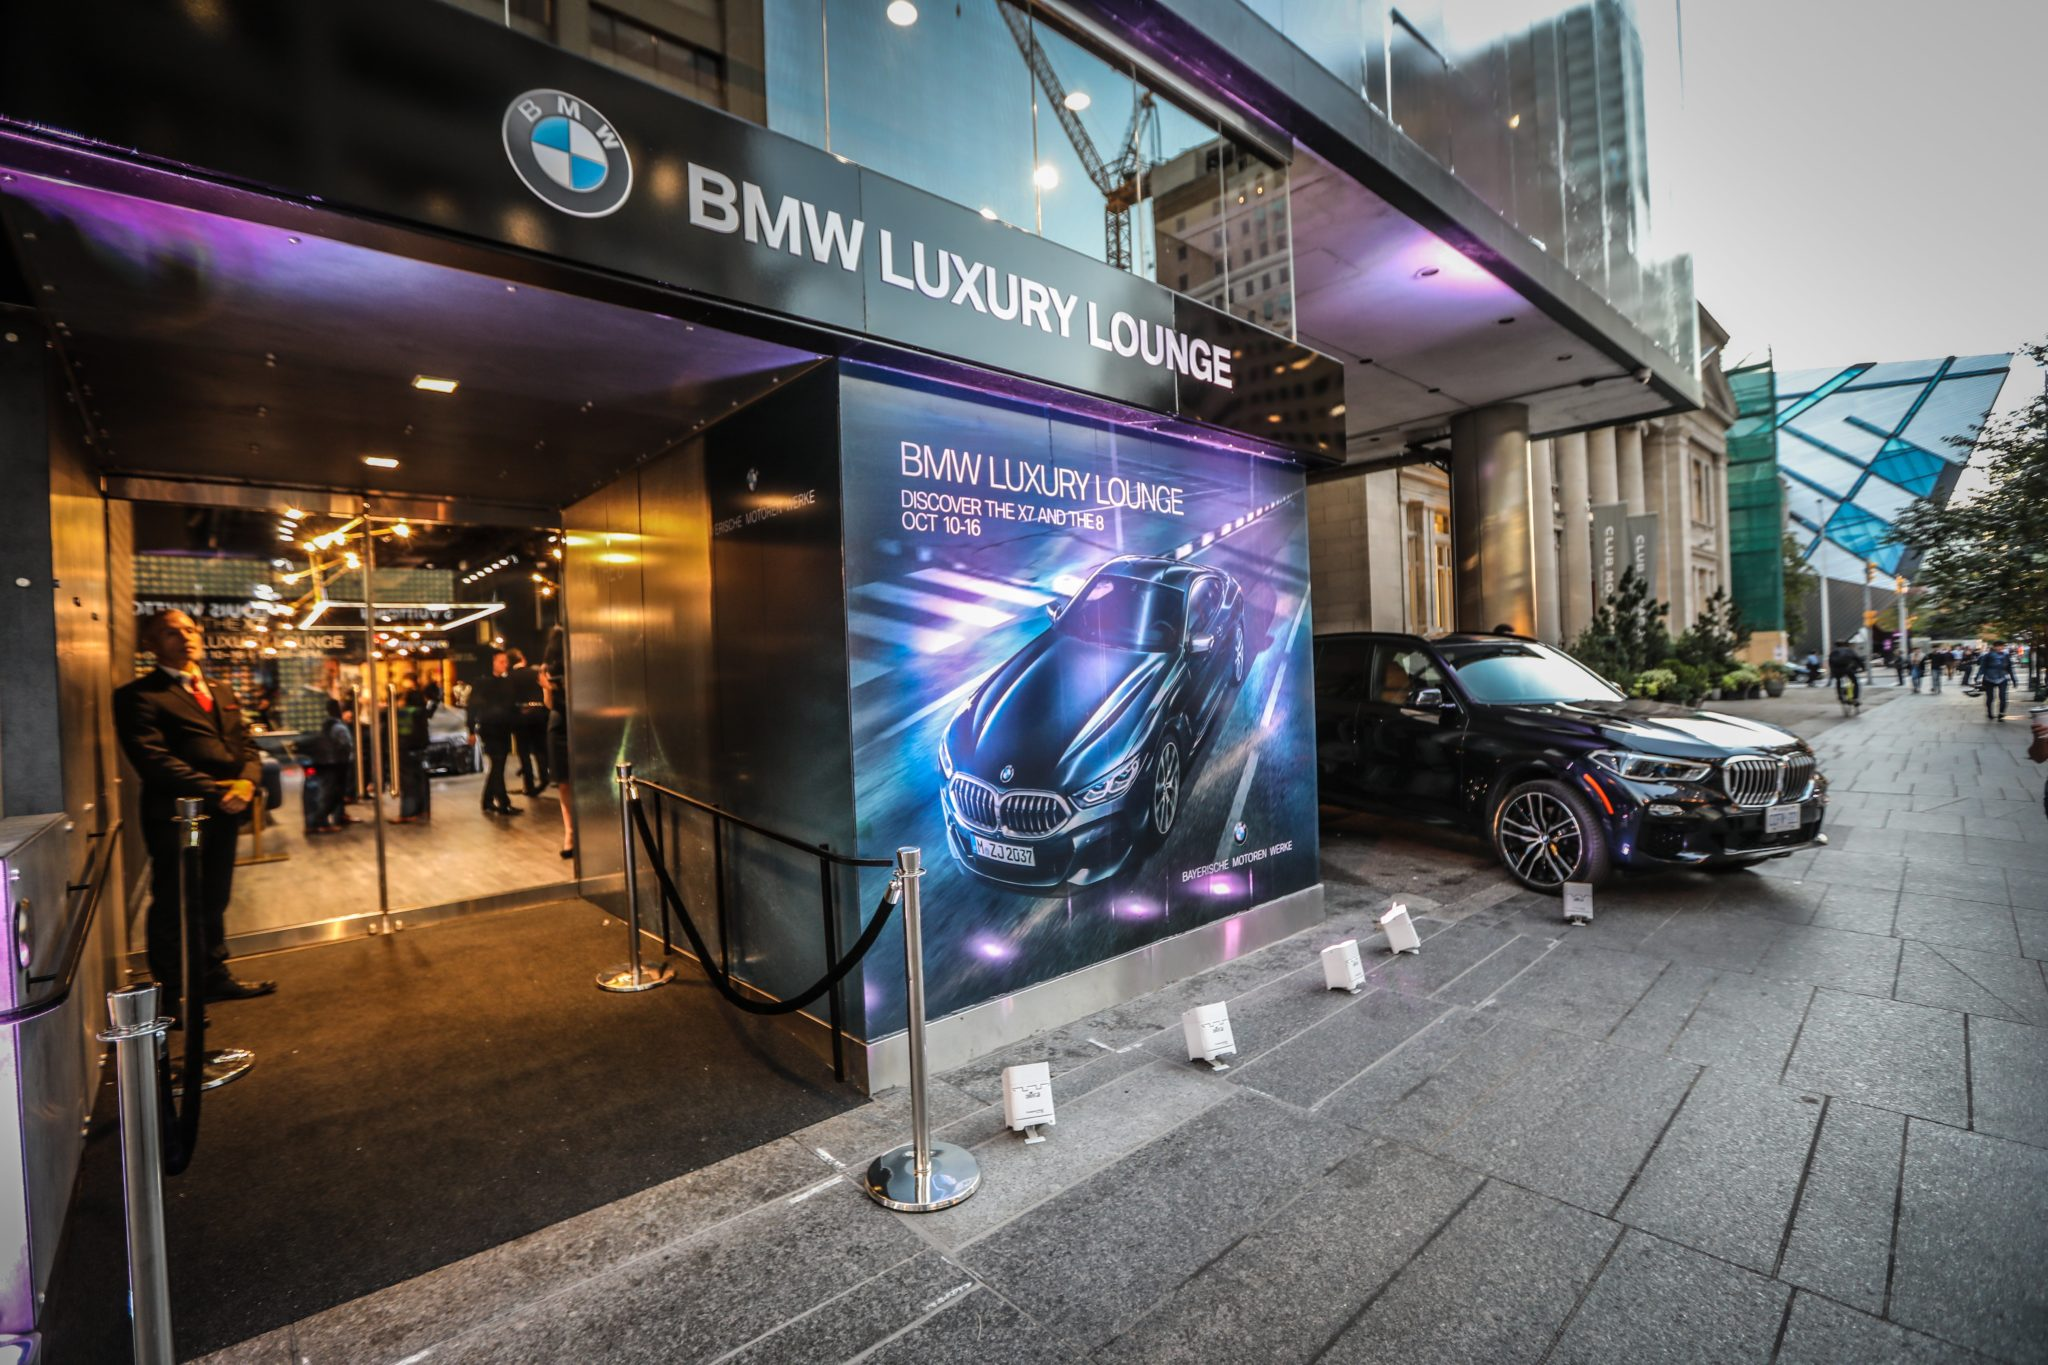 Bmw Luxury Lounge Showcases Future Products Retail News Asia